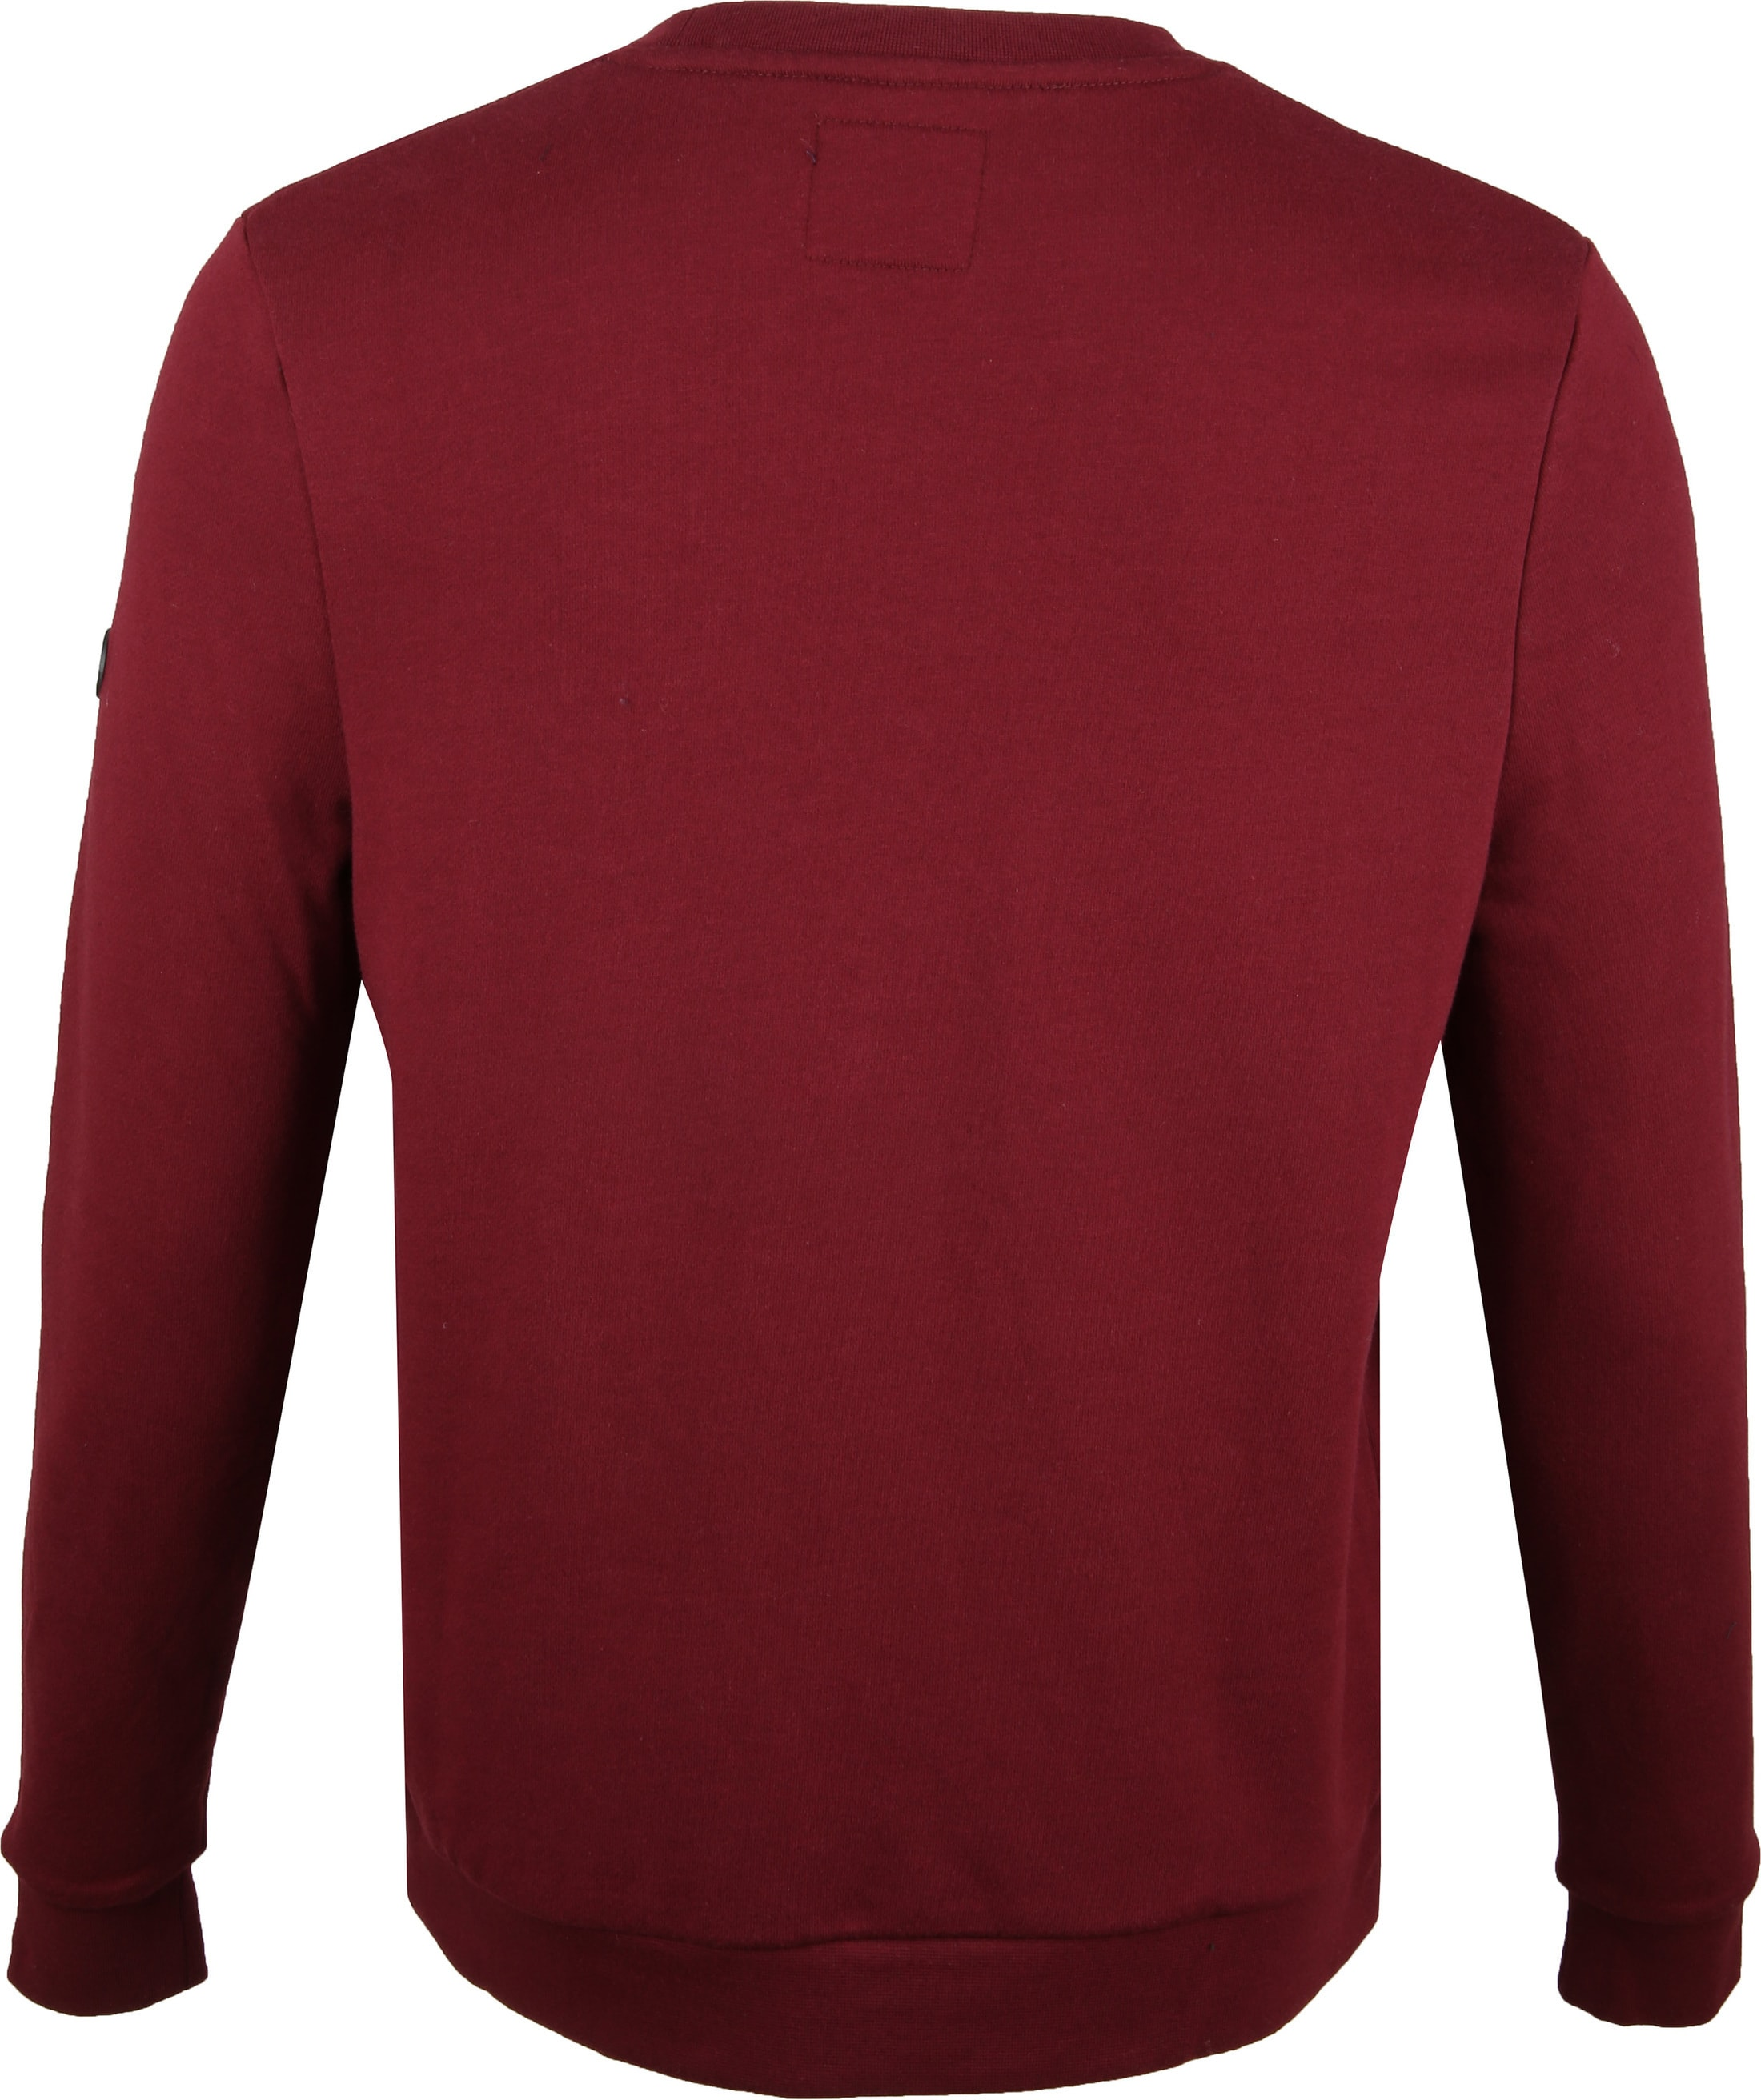 Suitable Sweater Sven Burgundy photo 4